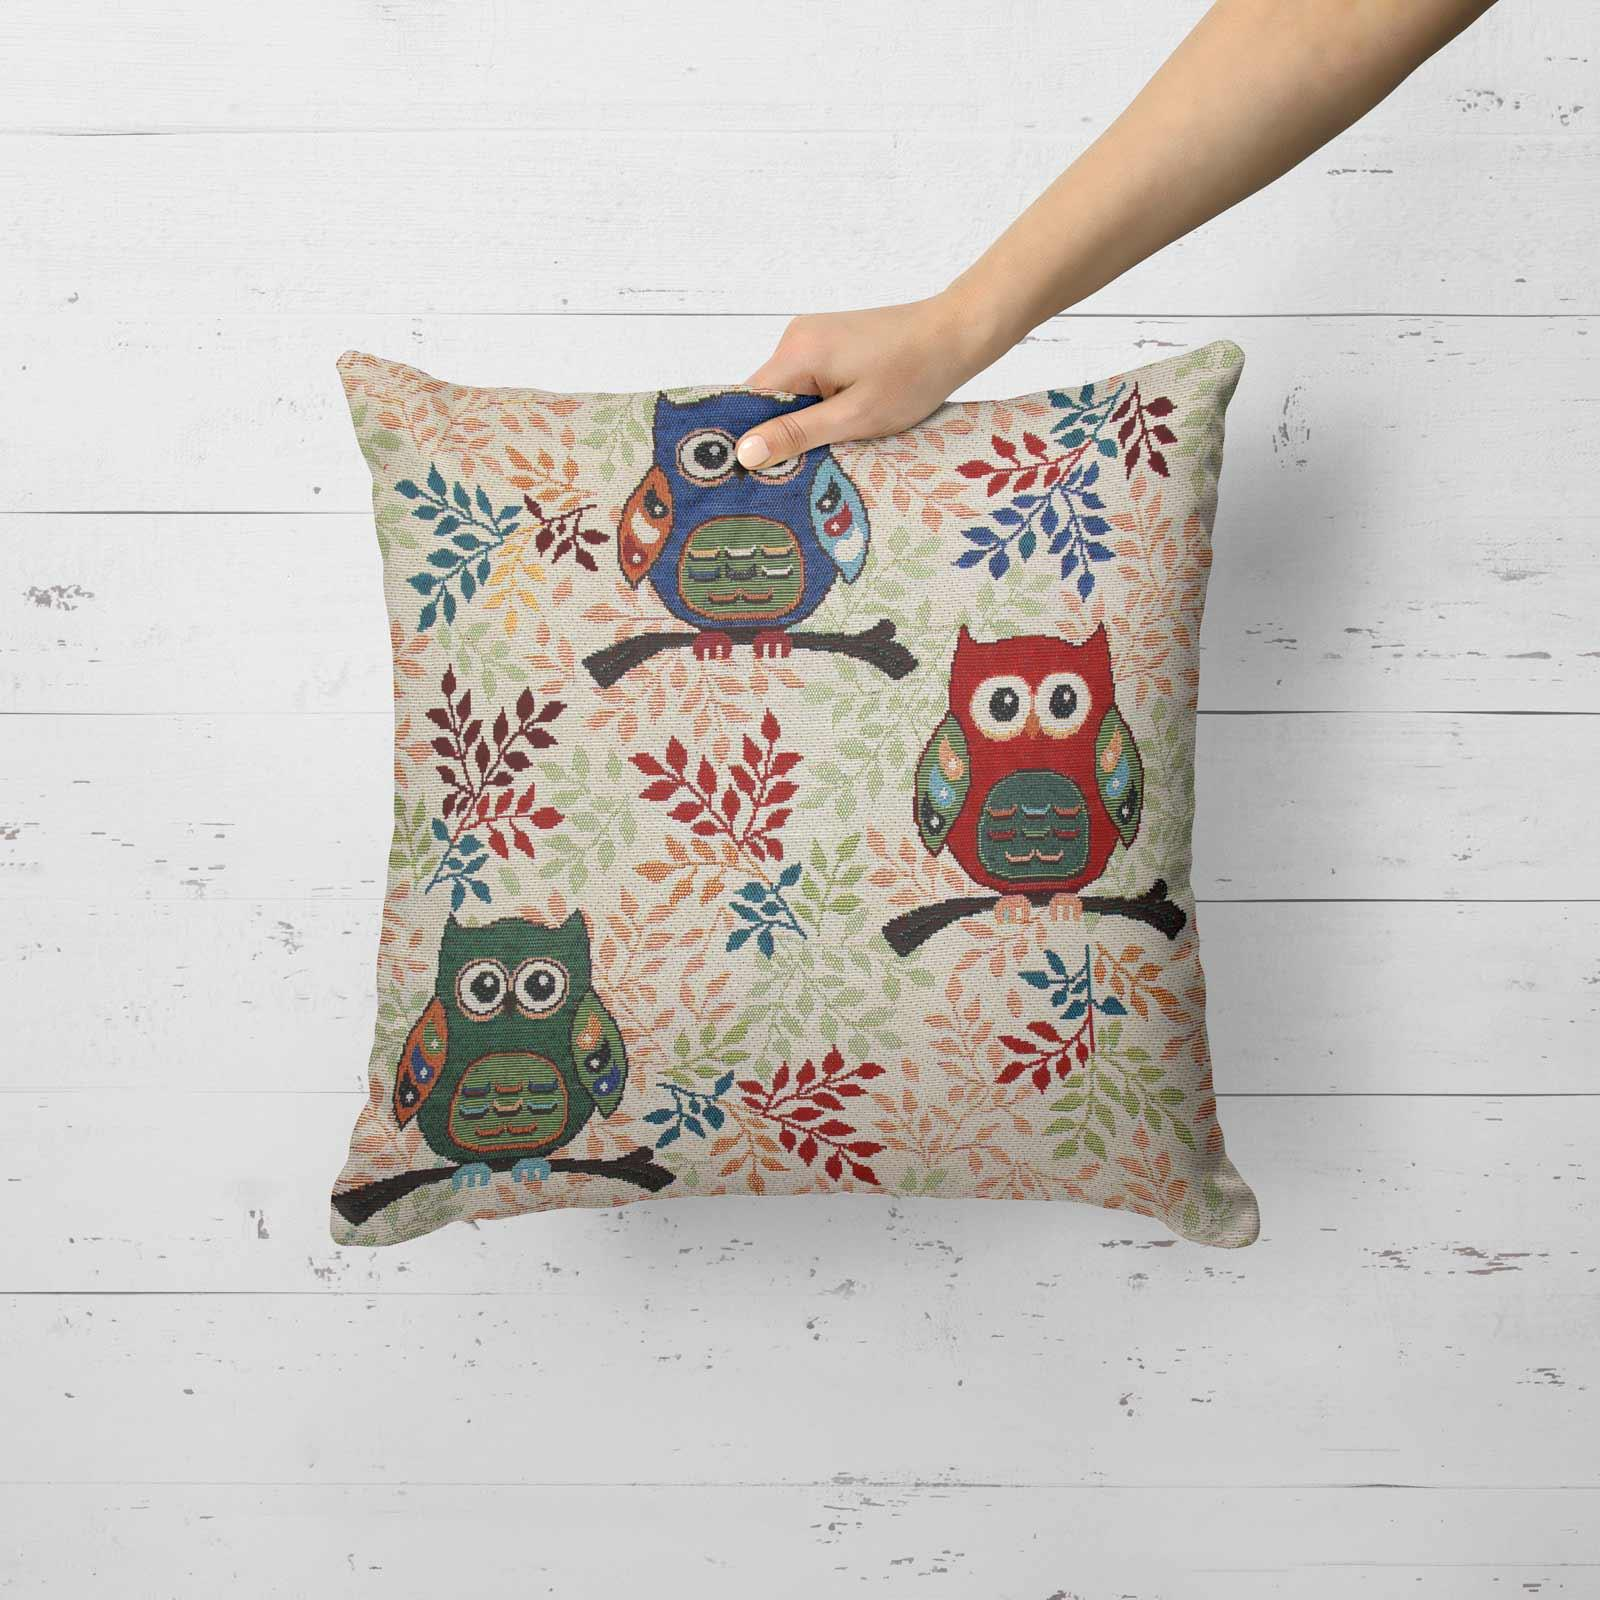 Tapestry-Cushion-Covers-Vintage-Pillow-Cover-Collection-18-034-45cm-Filled-Cushions thumbnail 207